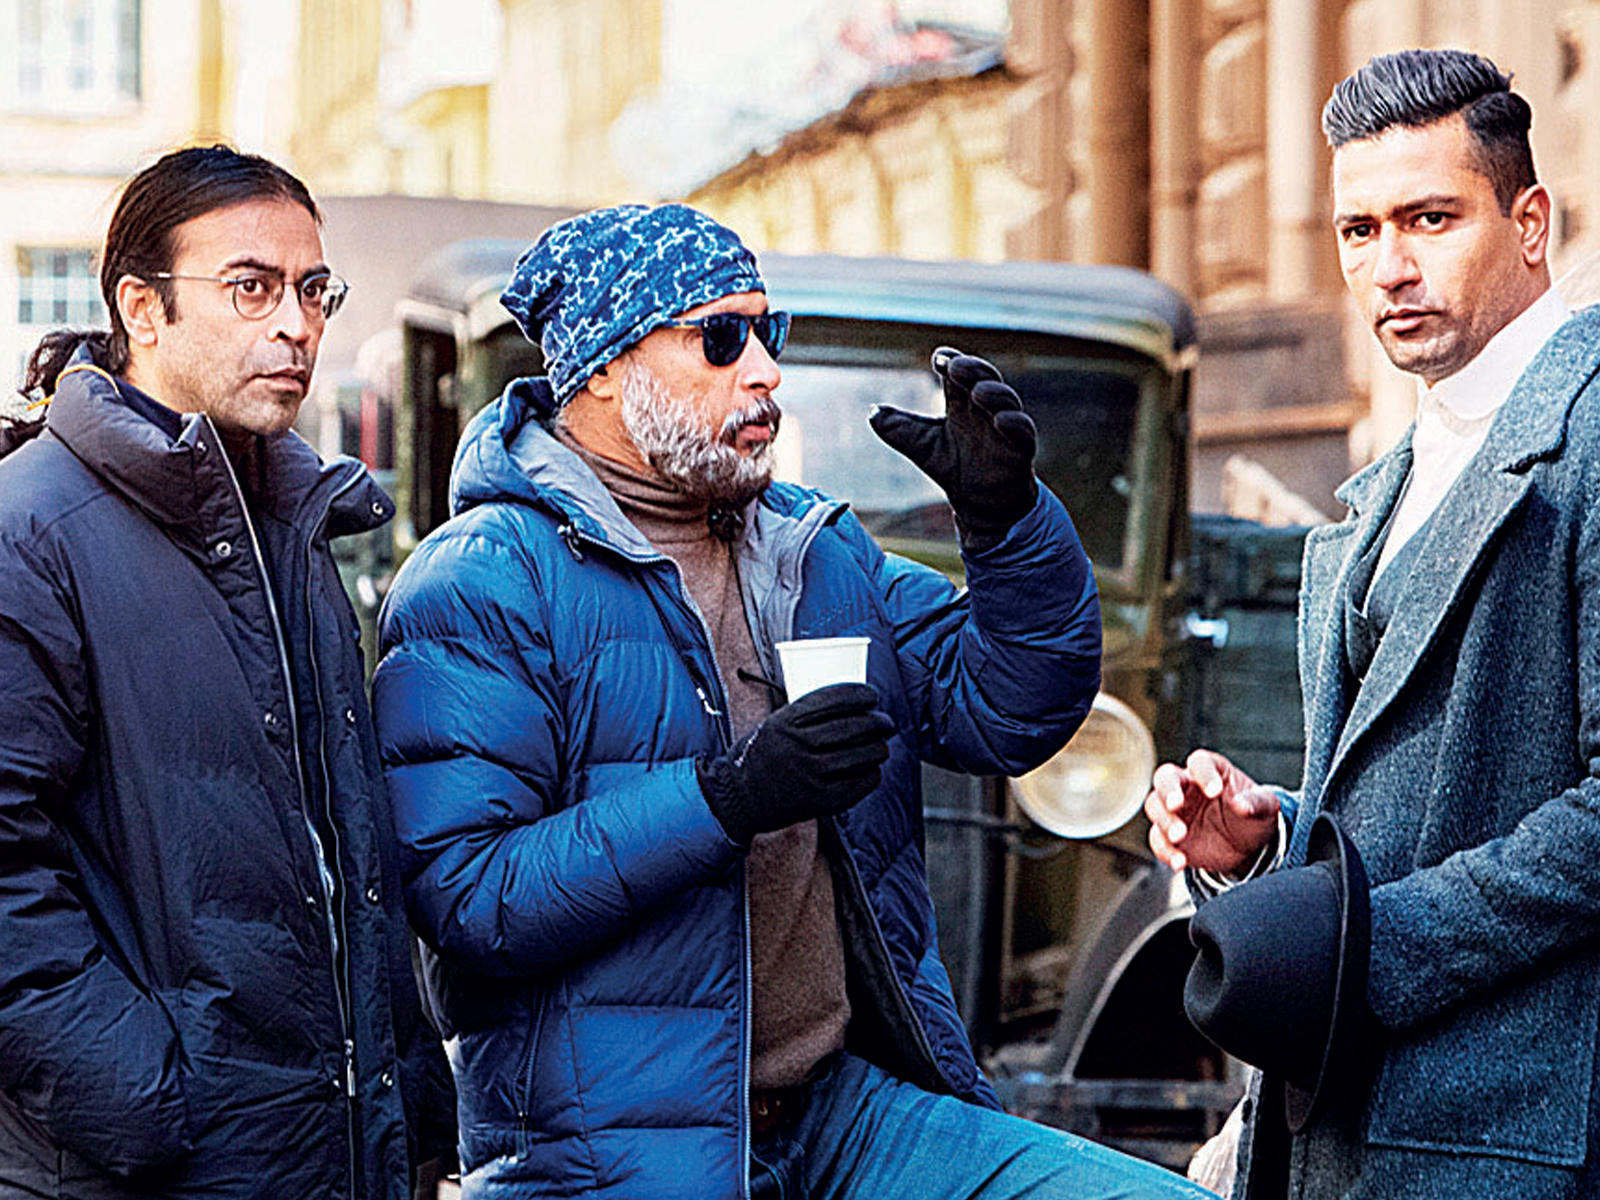 Shoojit Sircar: Vicky Kaushal's intensity and anger convinced me he was  Udham Singh